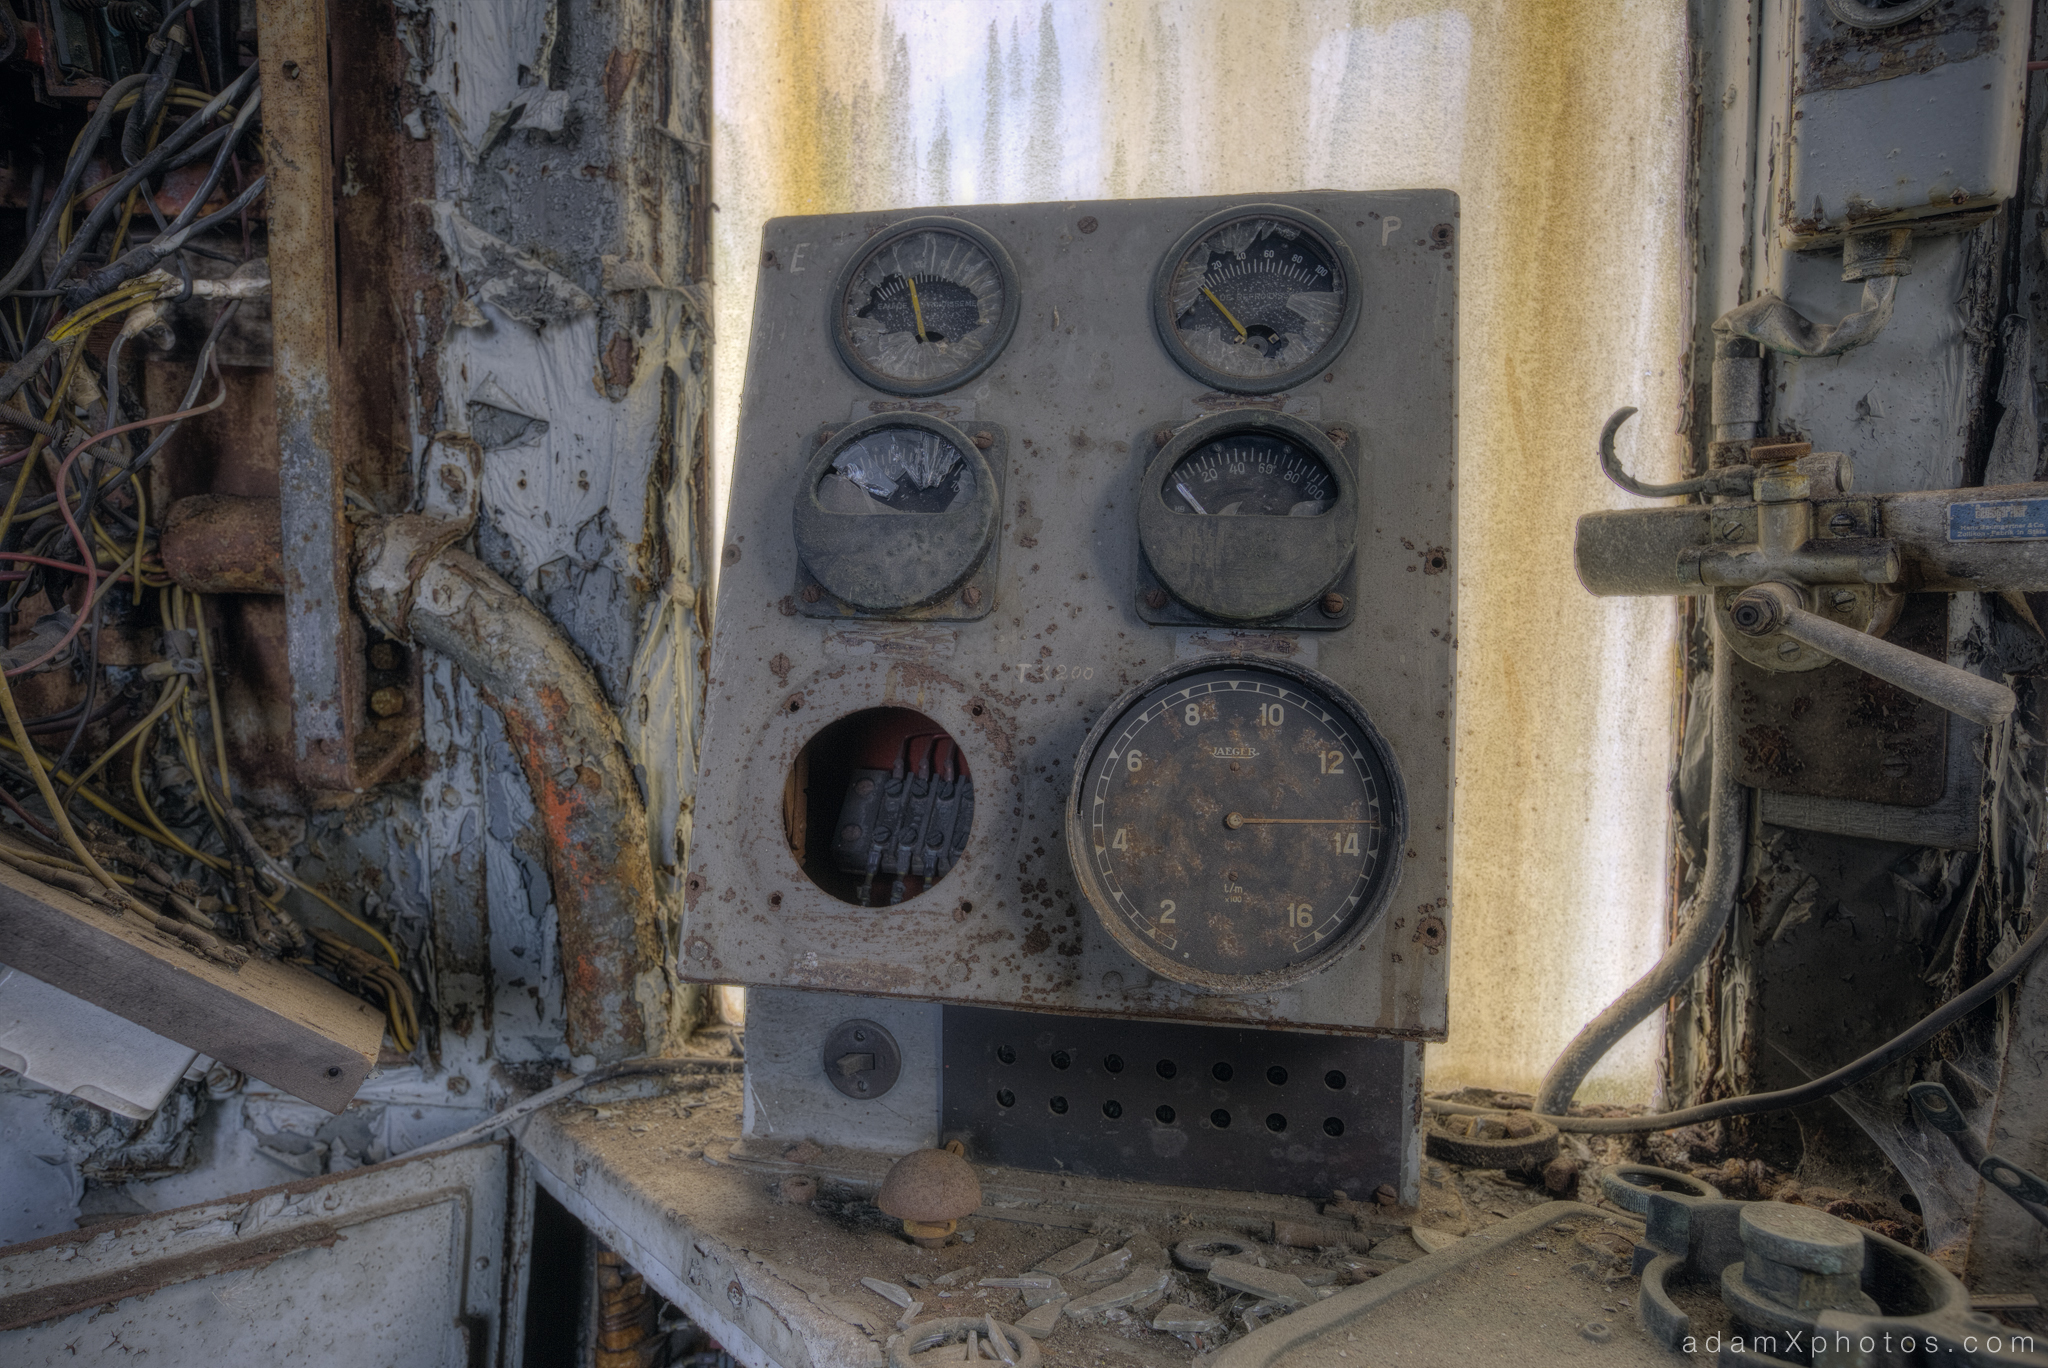 Adam X Urbex Urban Exploration Orient Express internal controls dials